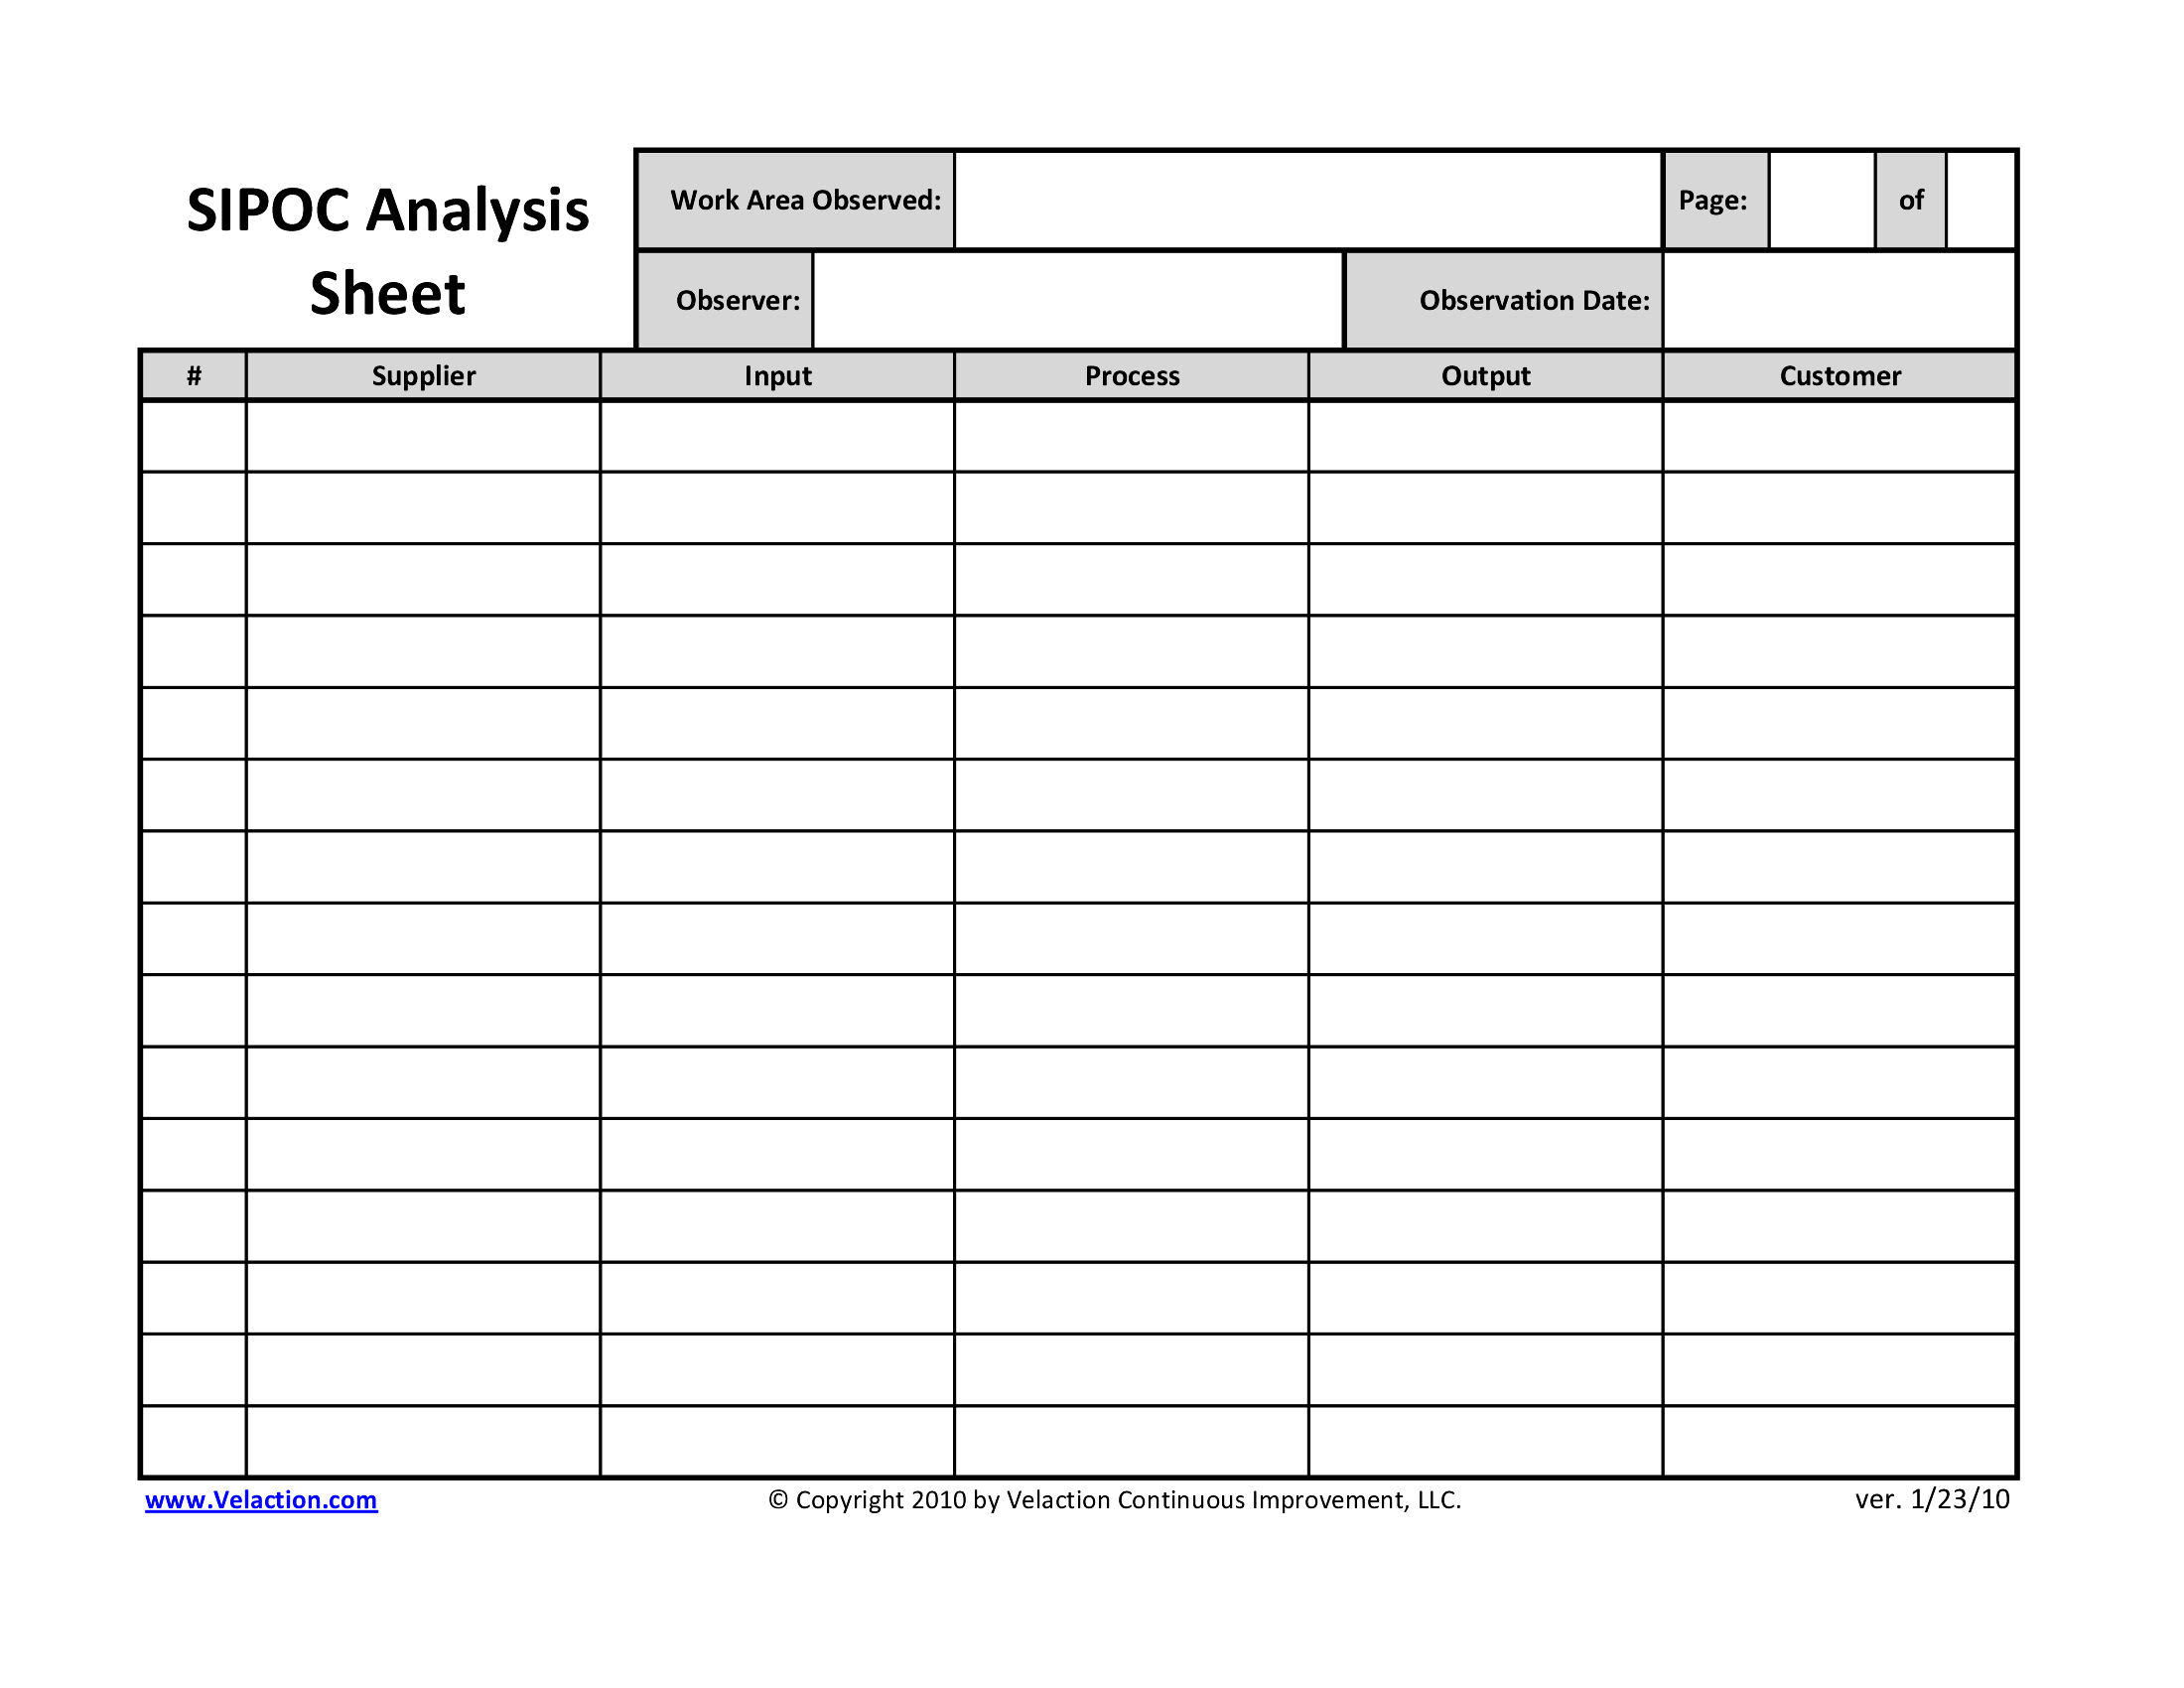 SIPOC Analysis Sheet